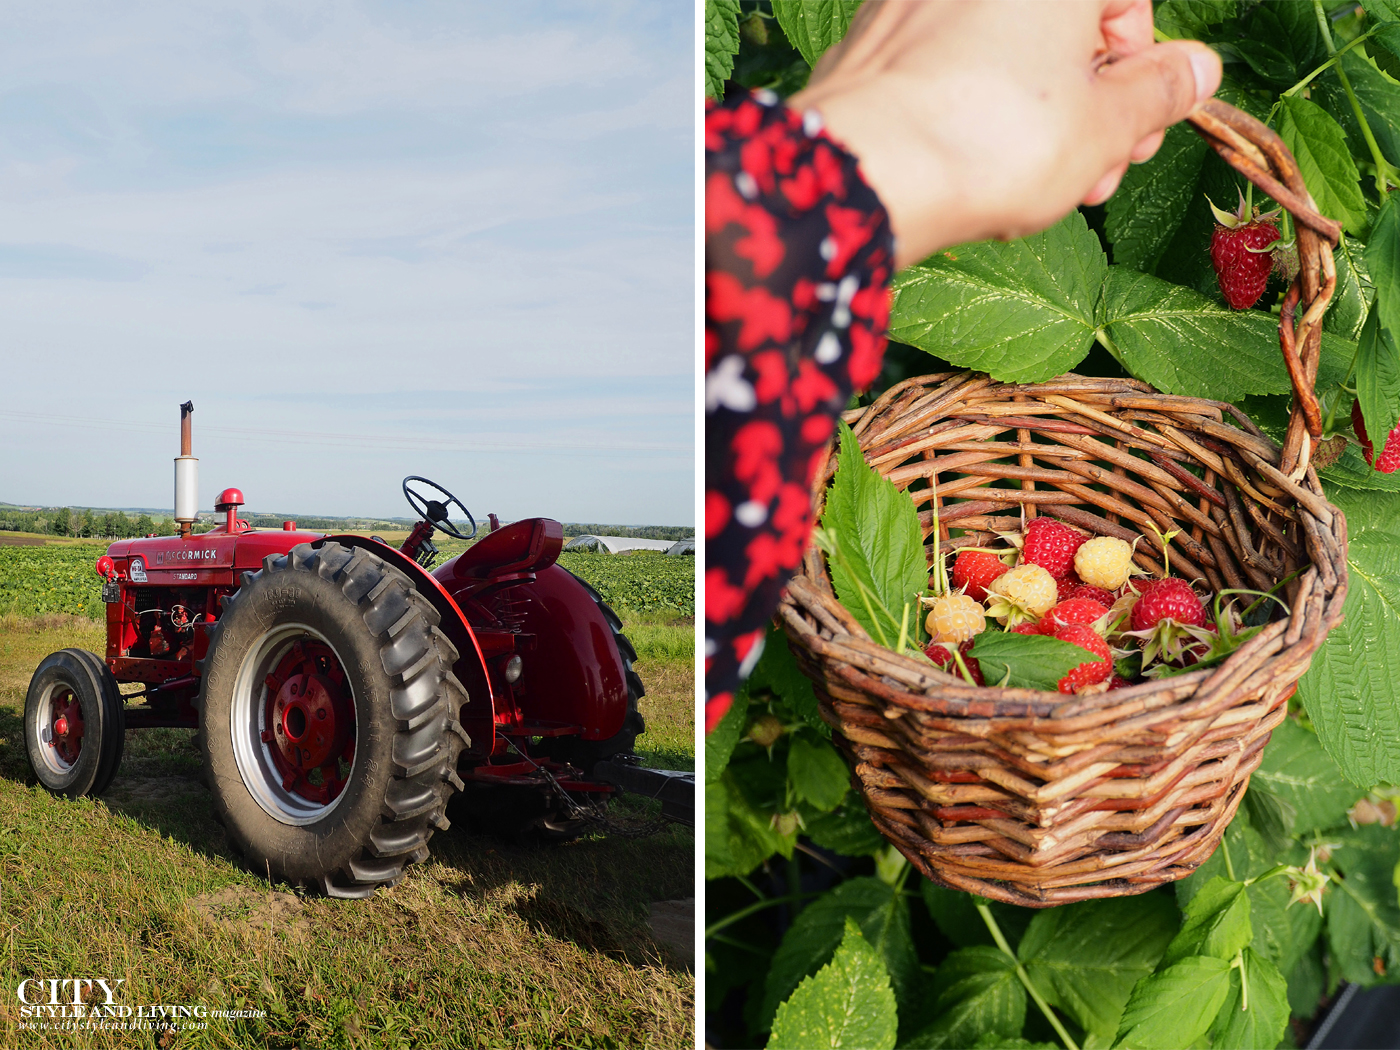 City Style and Living Magazine Travel Foodies Guide Red Deer Alberta The jungle farm tractor and raspberries